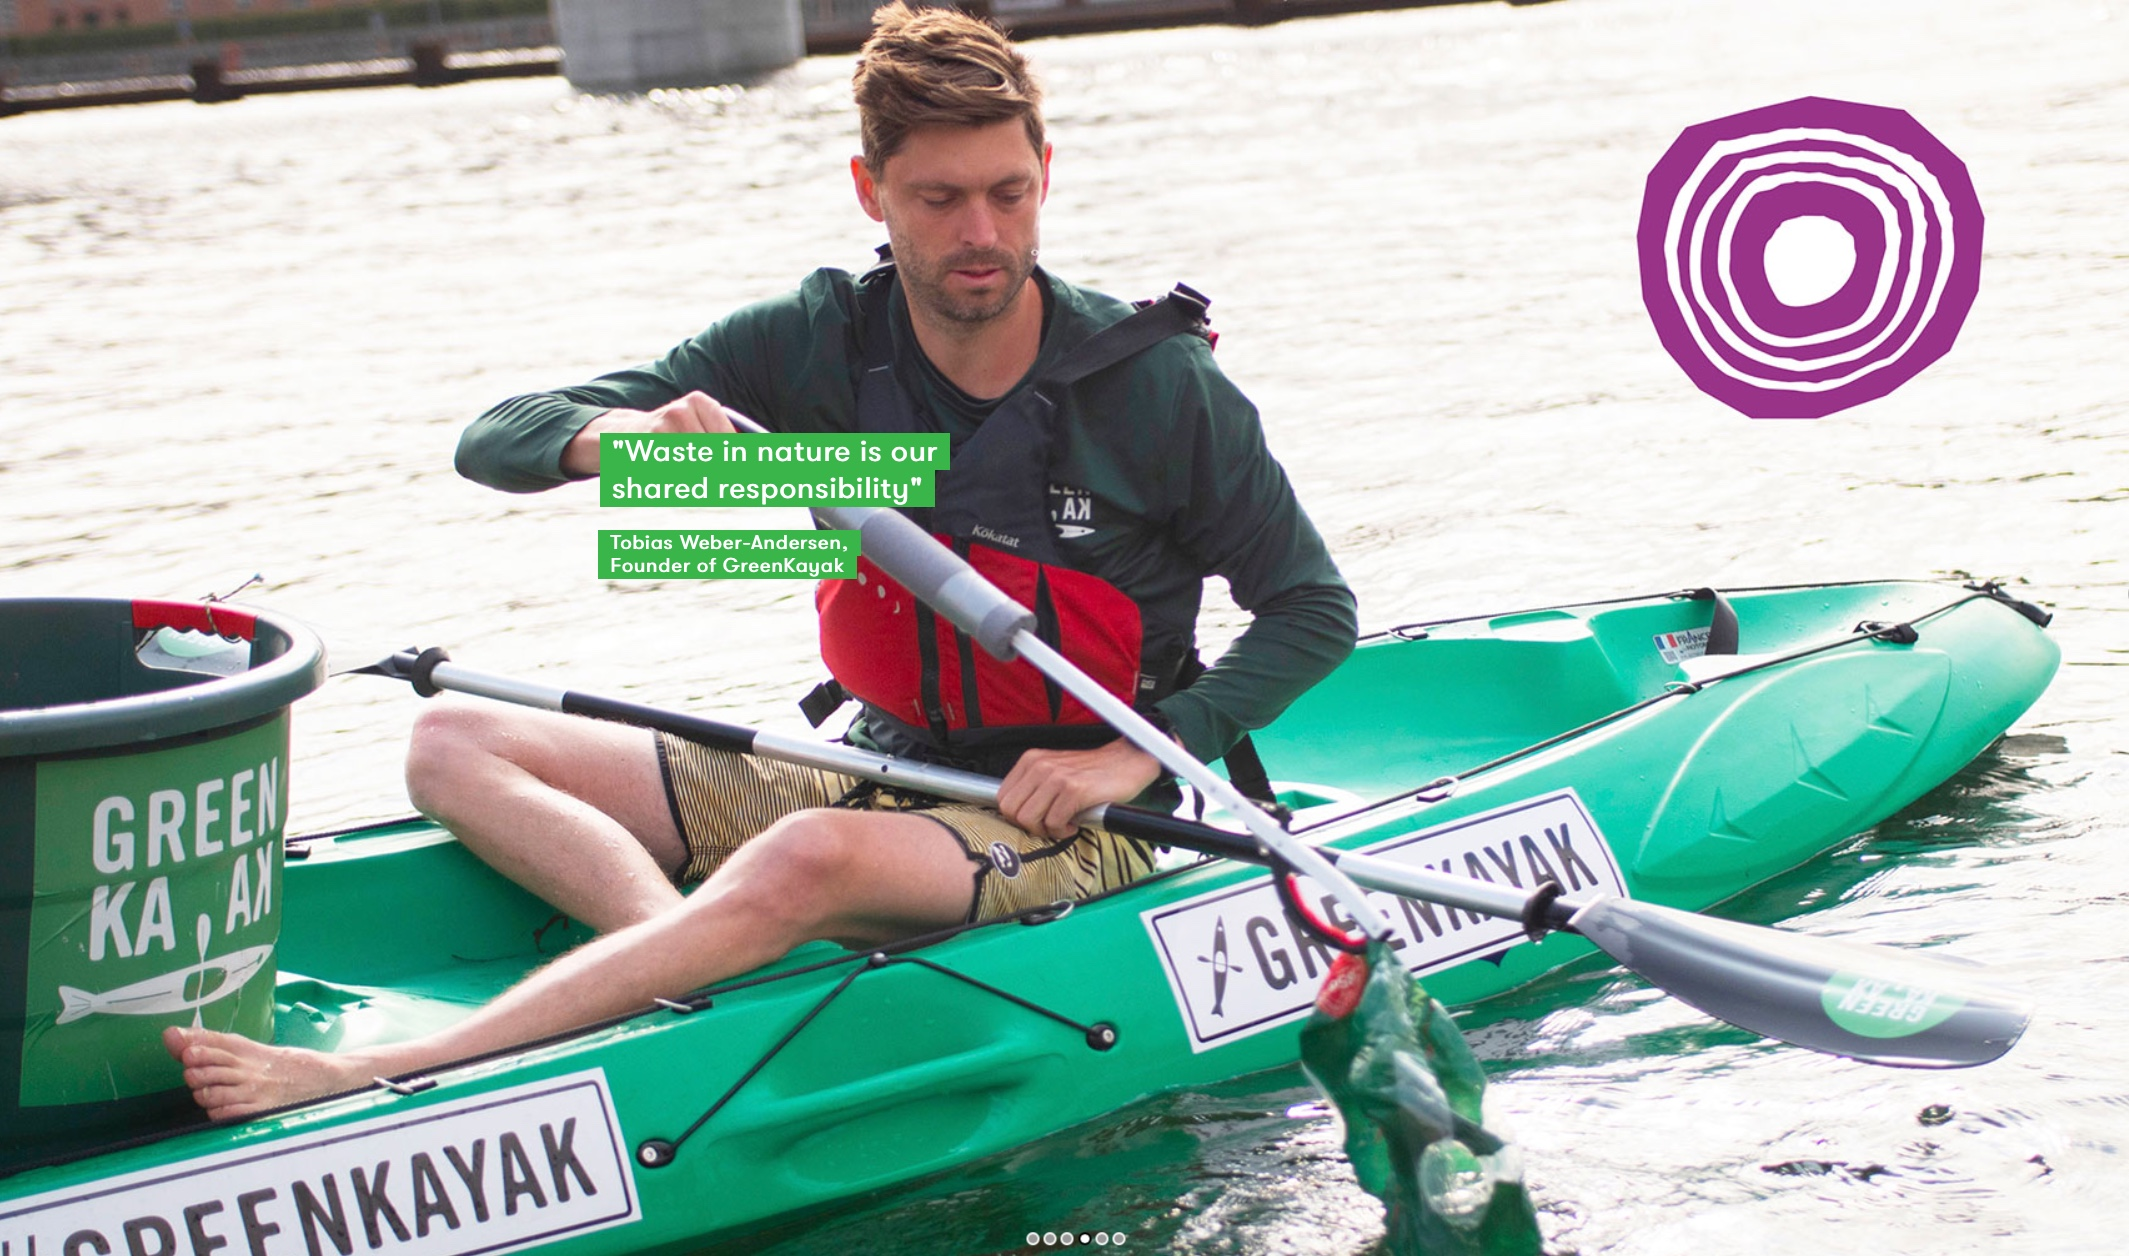 Green Kayak.jpeg